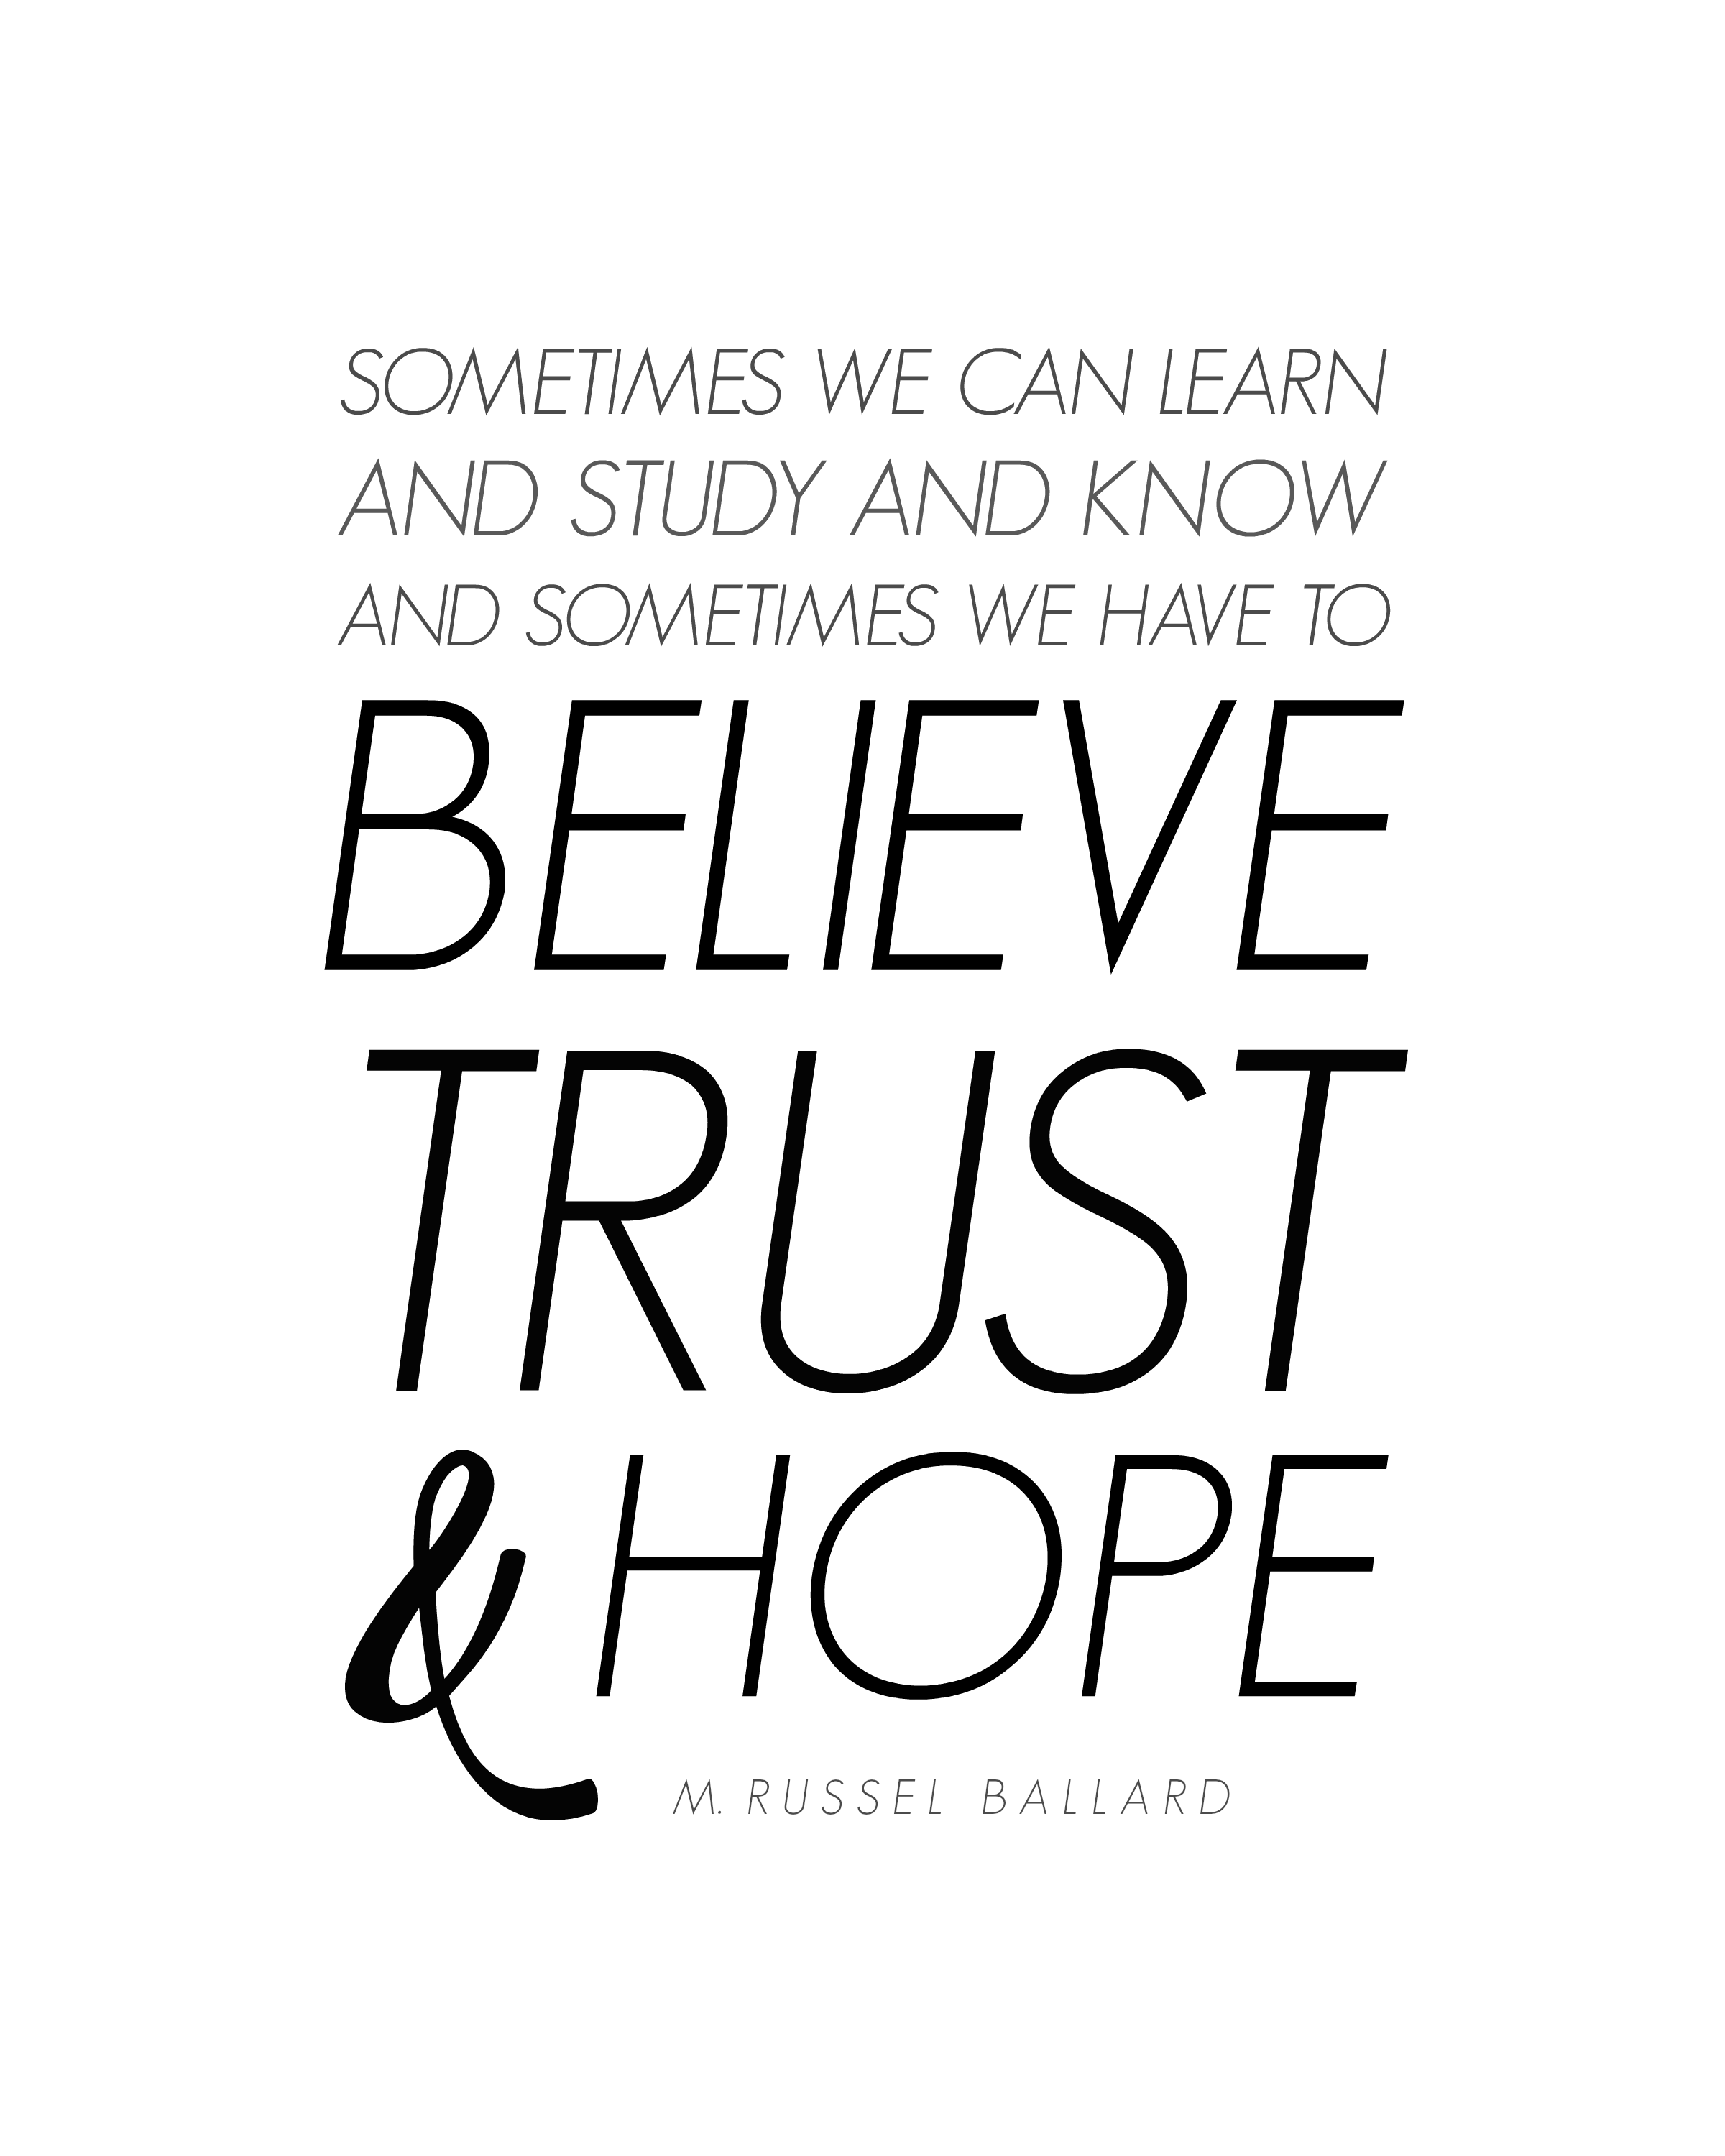 """Sometimes we can learn and study and know and sometimes we have to believe, trust and hope."" M. Russel Ballard 